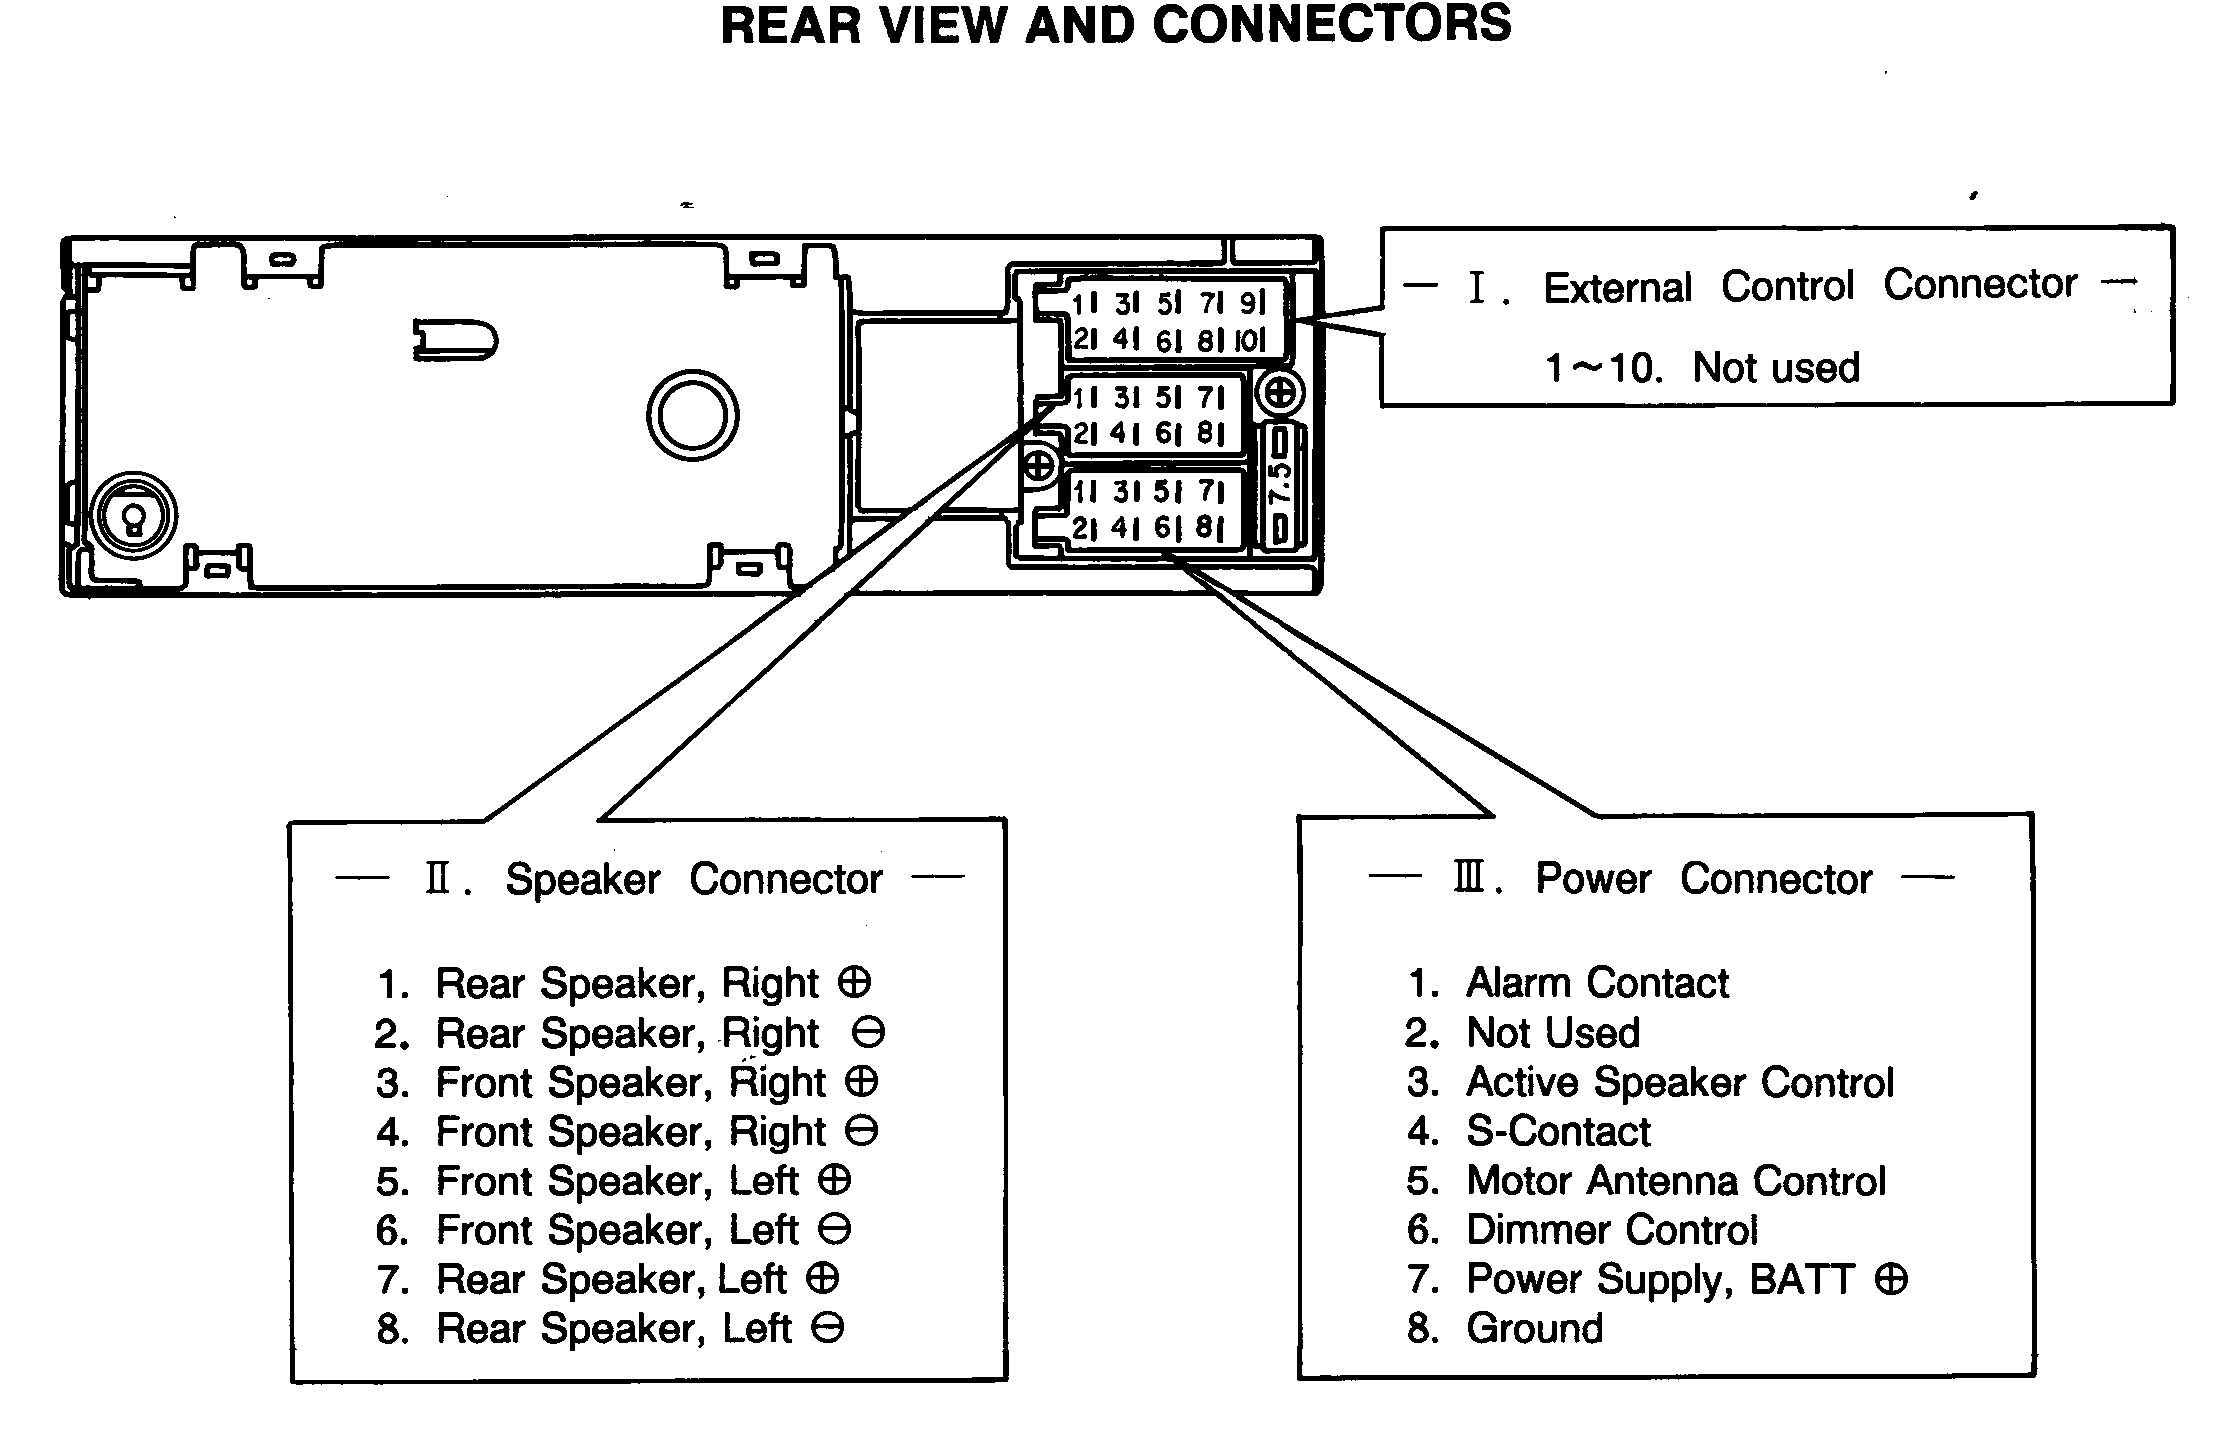 Ford Taurus Radio Wiring Diagram Car With Detaleted And Factory Stereo Diagrams Of